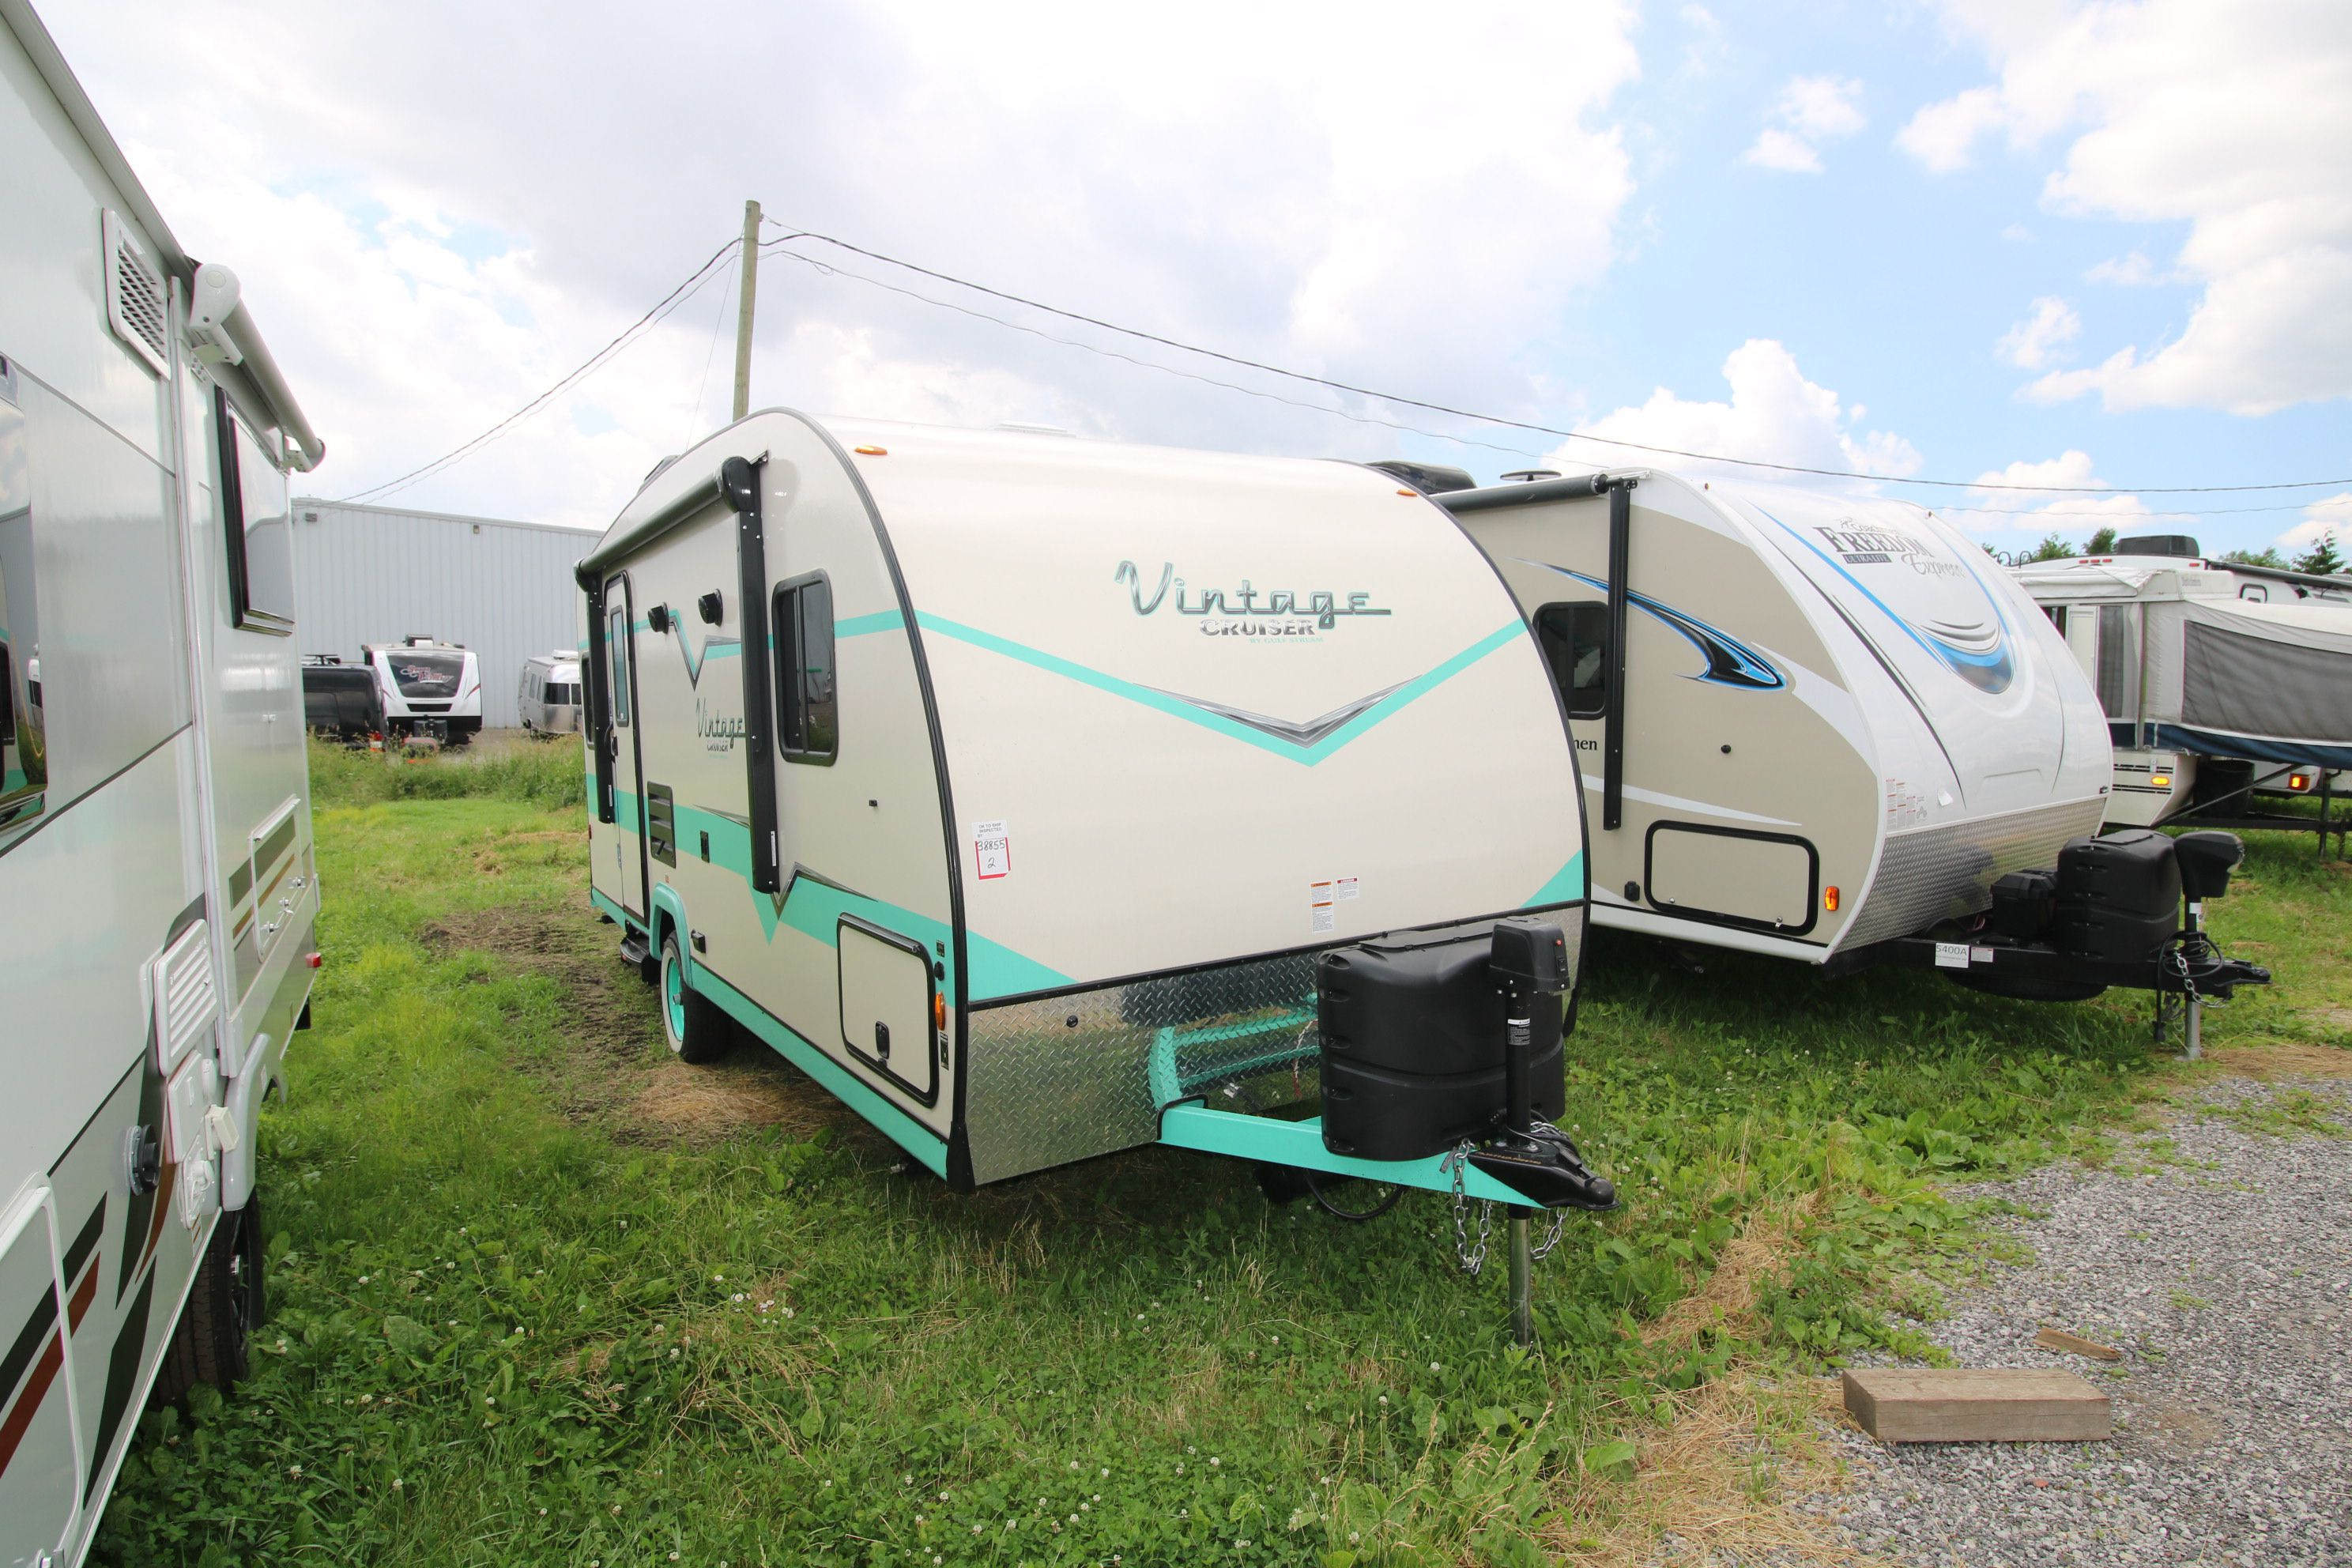 Vintage Cruiser Travel Trailers - Airstreams | Campers | Can-Am RV